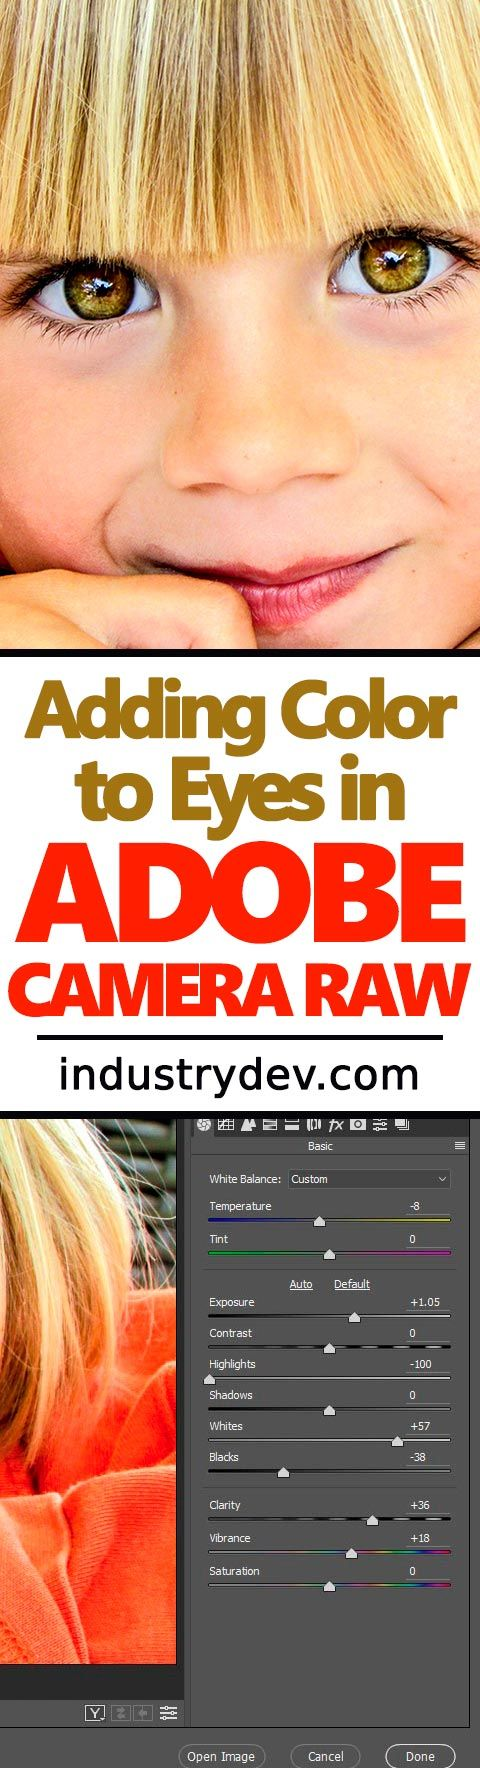 "How to Add Eye Color in Adobe Camera Raw: One of the most important areas to edit when you're working on portraits in Adobe Photoshop and Camera Raw is the eyes. Eyes bring the whole thing home and gets you the ""oohs"" and the ""aahs."" In my latest post, I walk through the process of editing a young model's face in Camera Raw and then adding some color to his eyes. It's a simple process that really doesn't take much time at all, so click through to read the post and learn something new."